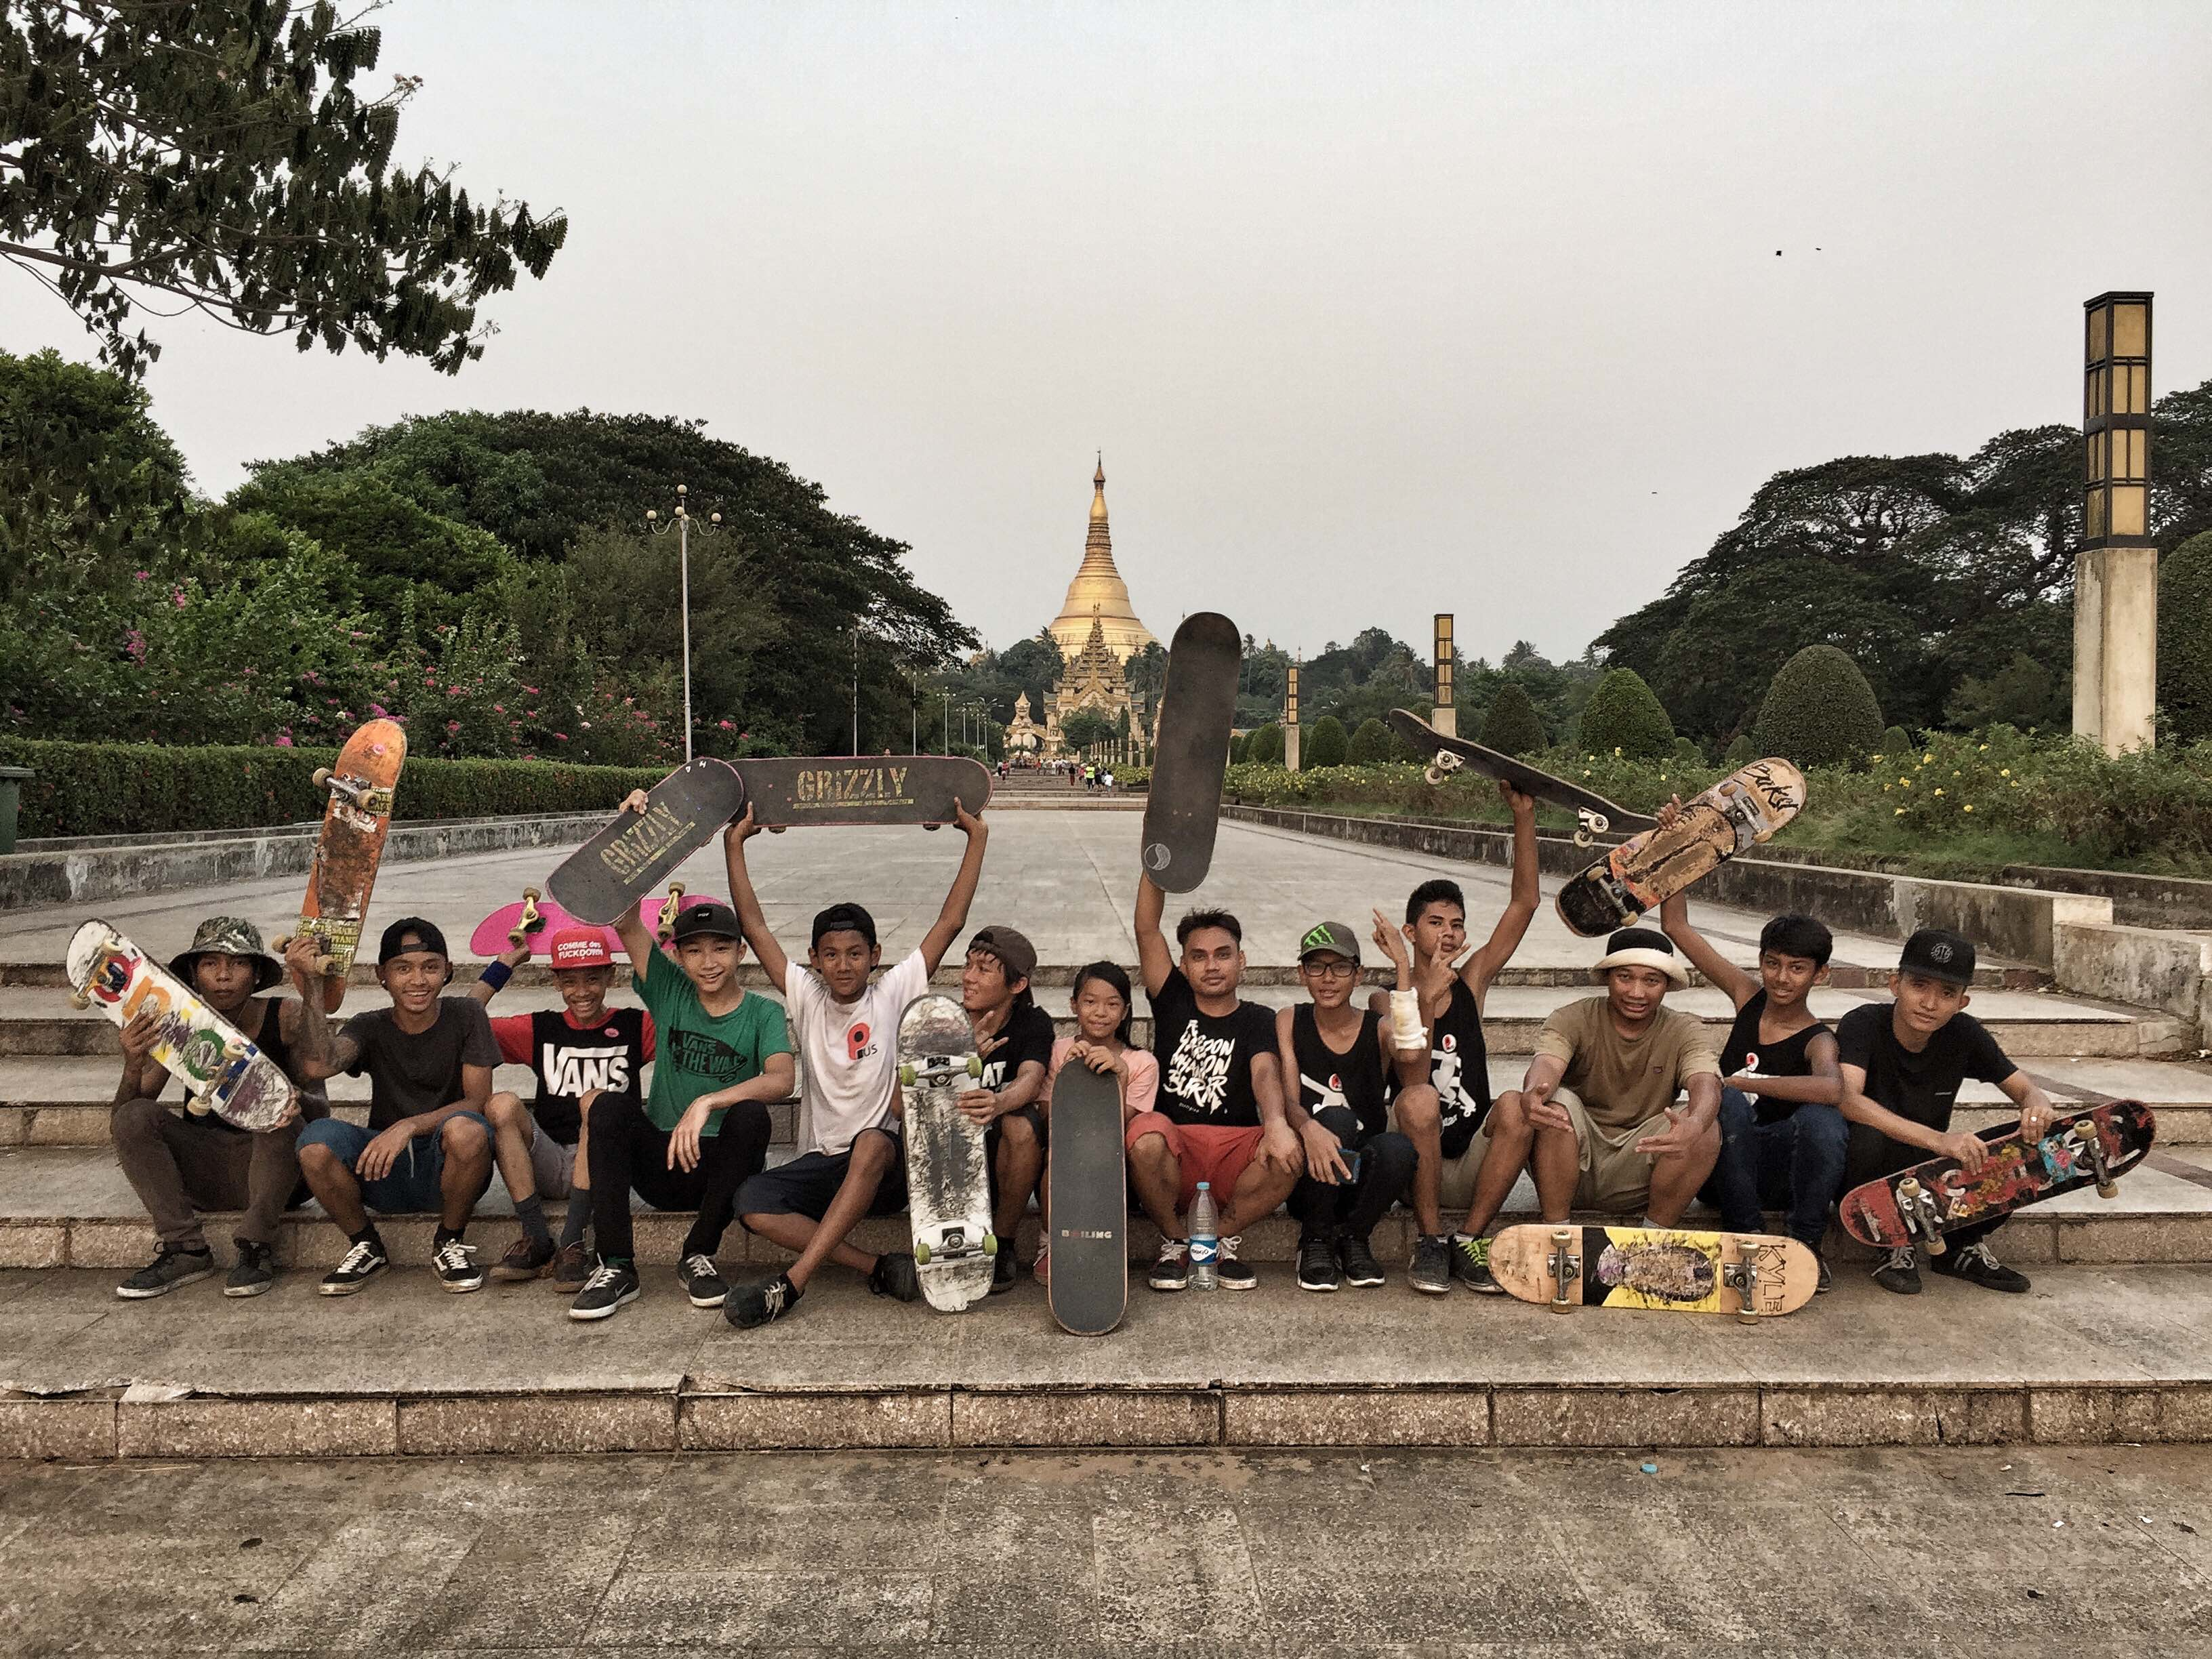 For the skaters of Myanmar, boards are a symbol of hope